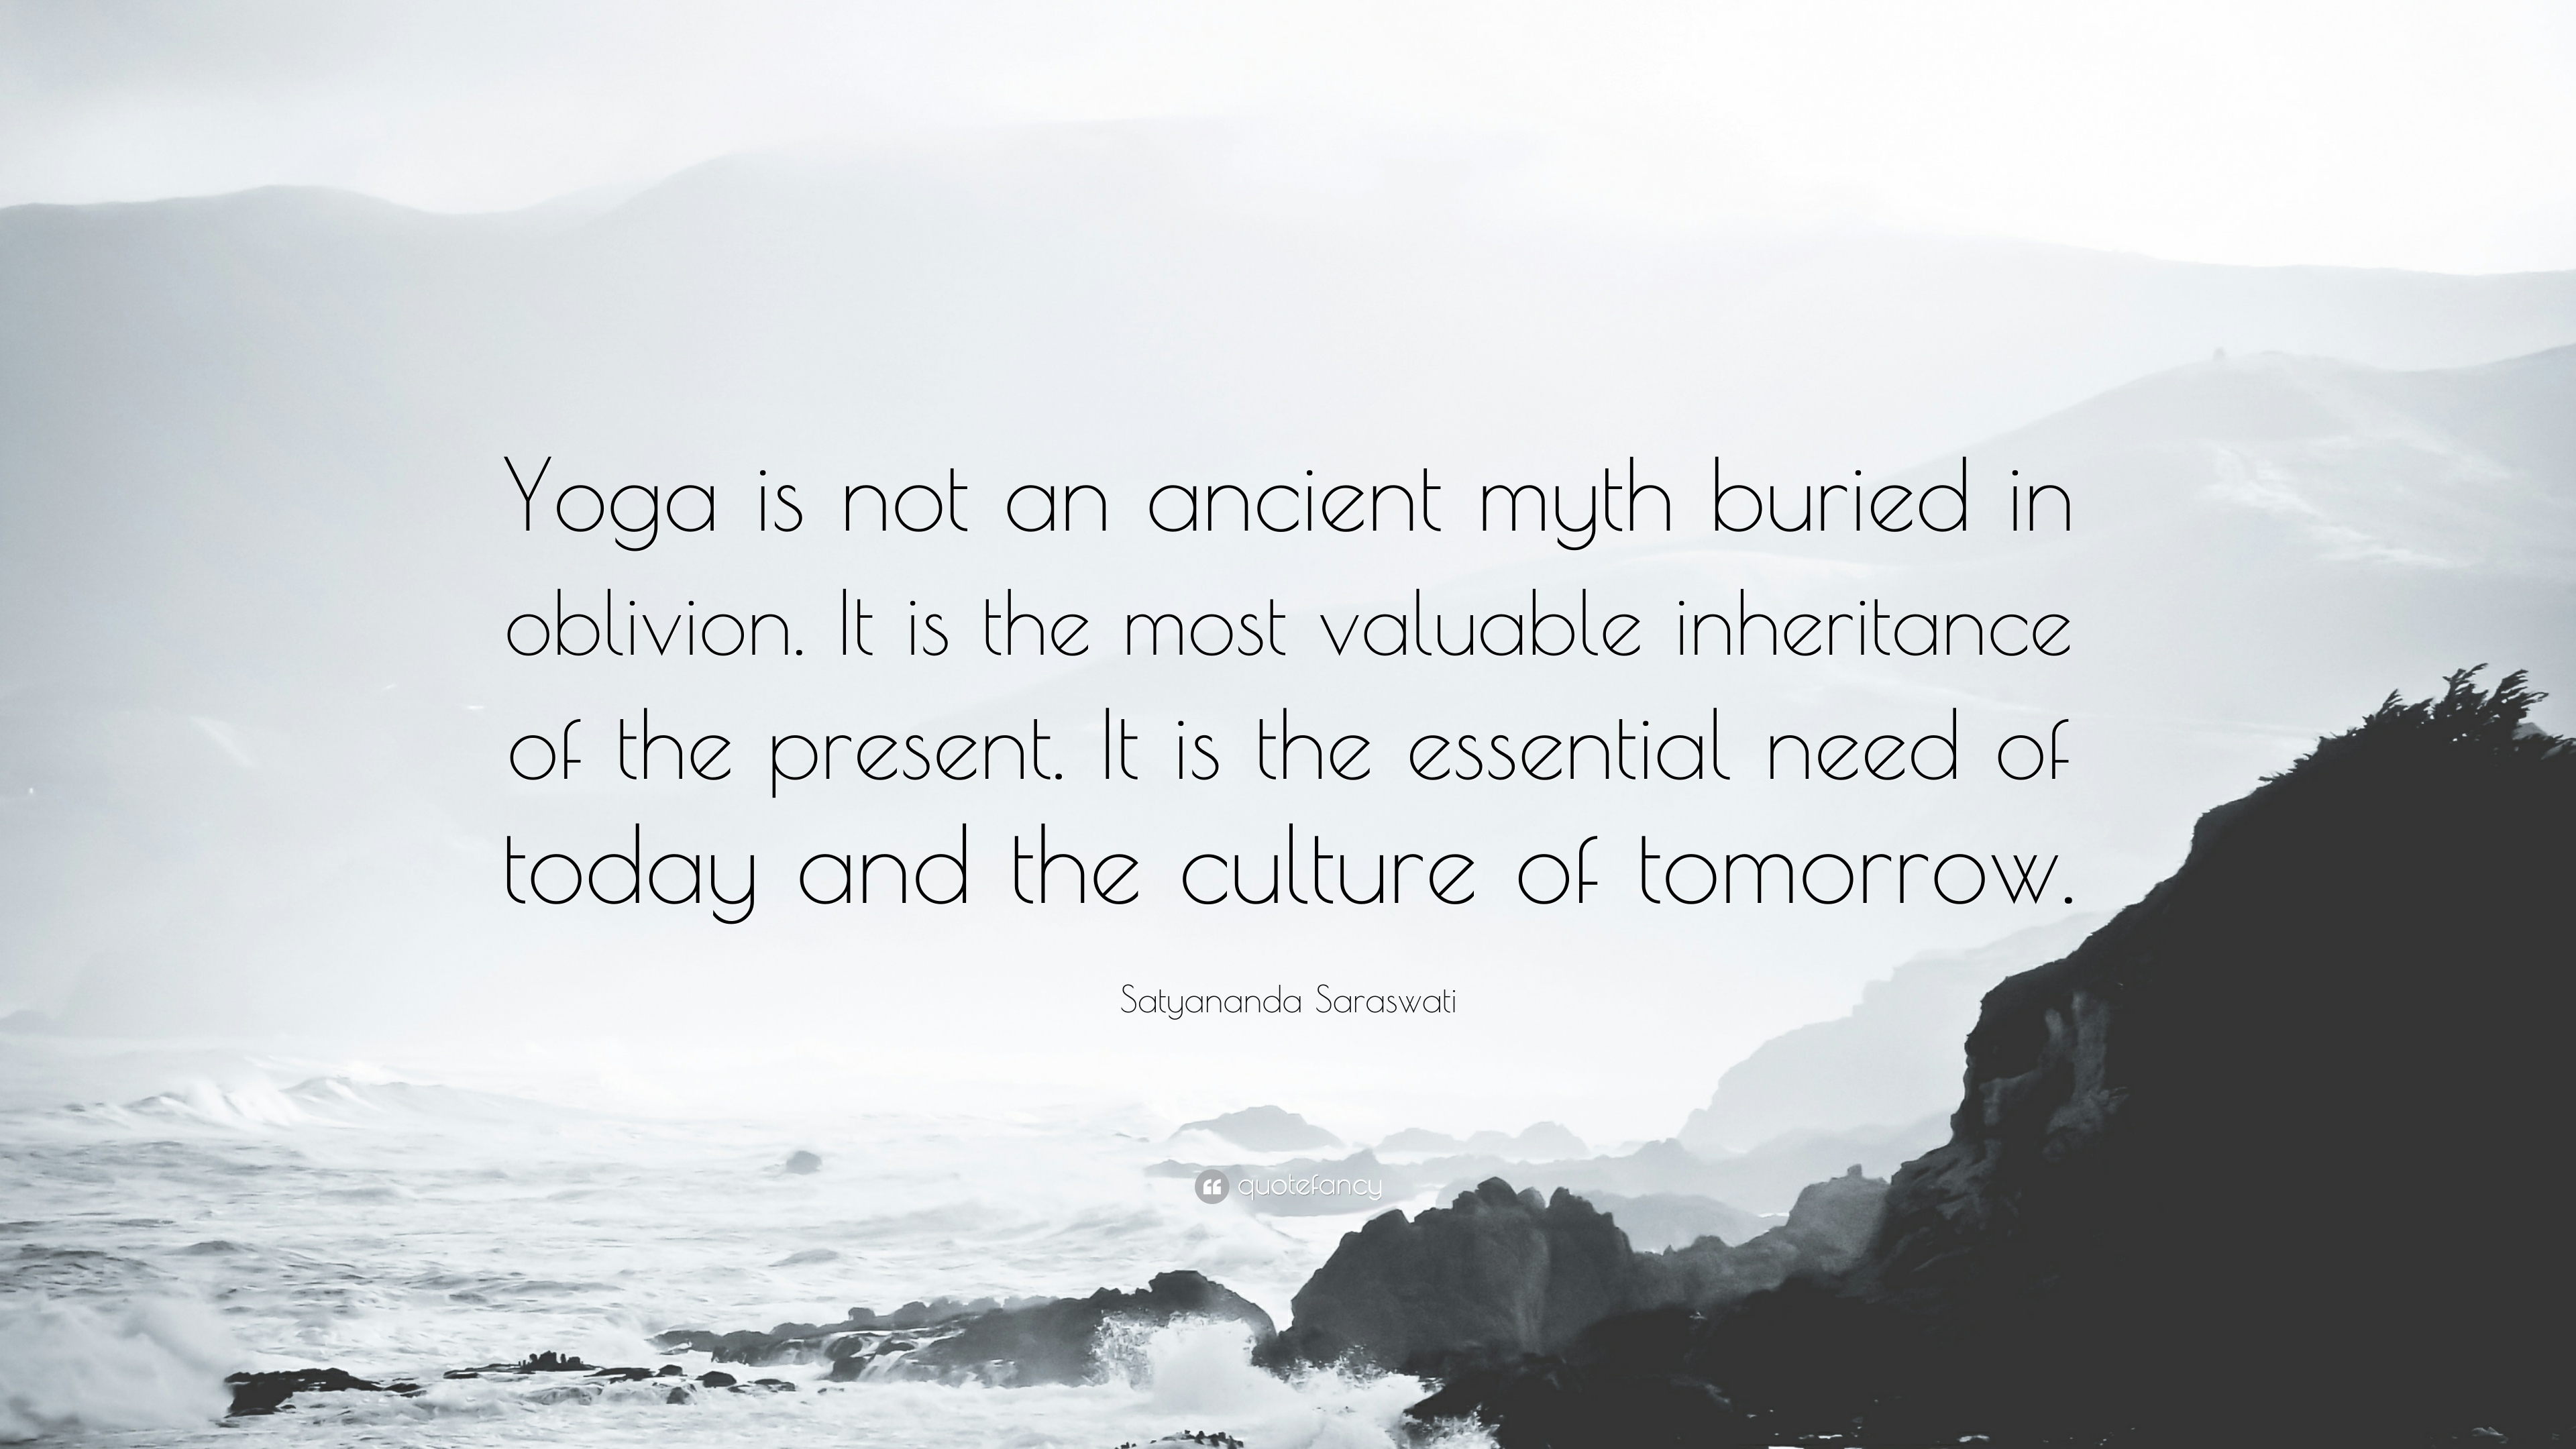 Quotes Yoga New Satyananda Saraswati Quotes 4 Wallpapers  Quotefancy